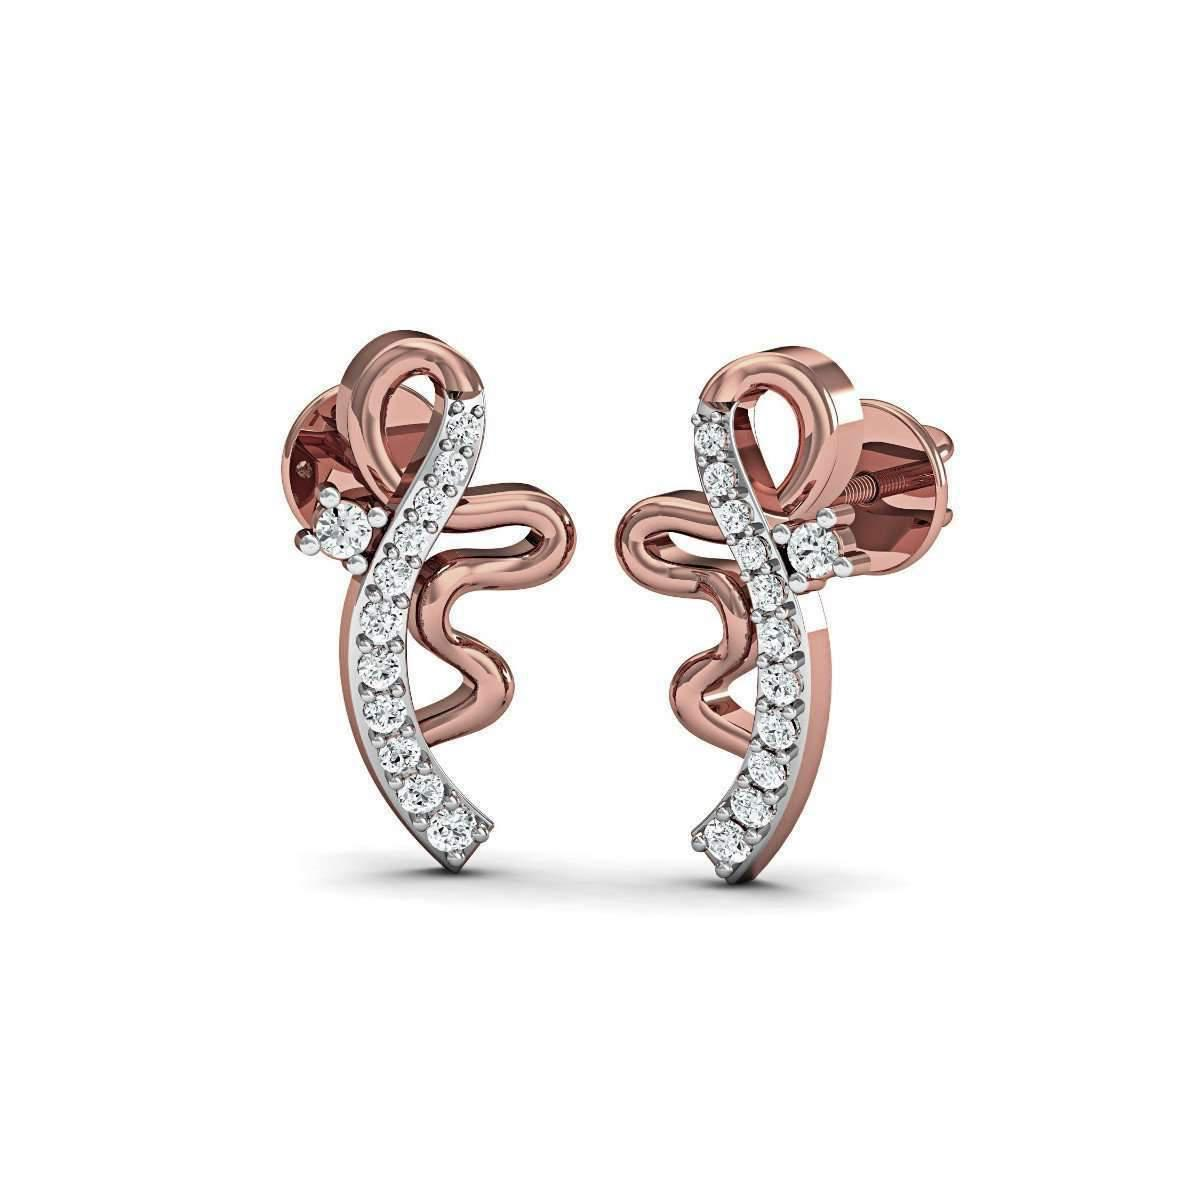 Diamoire Jewels Illimitable Diamond Stud Earrings in 18kt White Gold